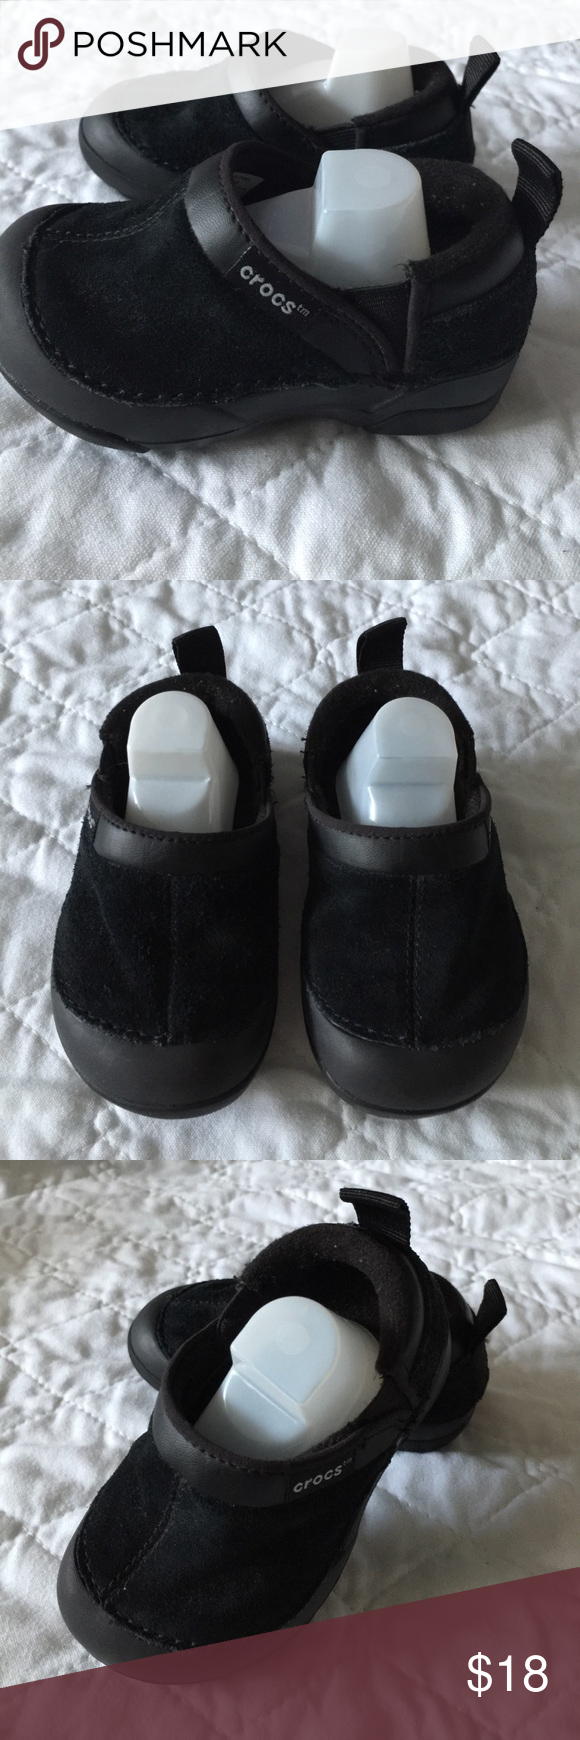 Croc's slip-on Black Suede Upper size 6 Toddler Super comfy Black Crocs size 6 baby/toddler excellent used condition. Only worn a few times by my baby with no wear on bottom. Round toe, slip-on, back pull tab, elasticized goring for easy on. Super cute! Great for fall and winter shoes. One of my favorite shoes! CROCS Shoes Baby & Walker